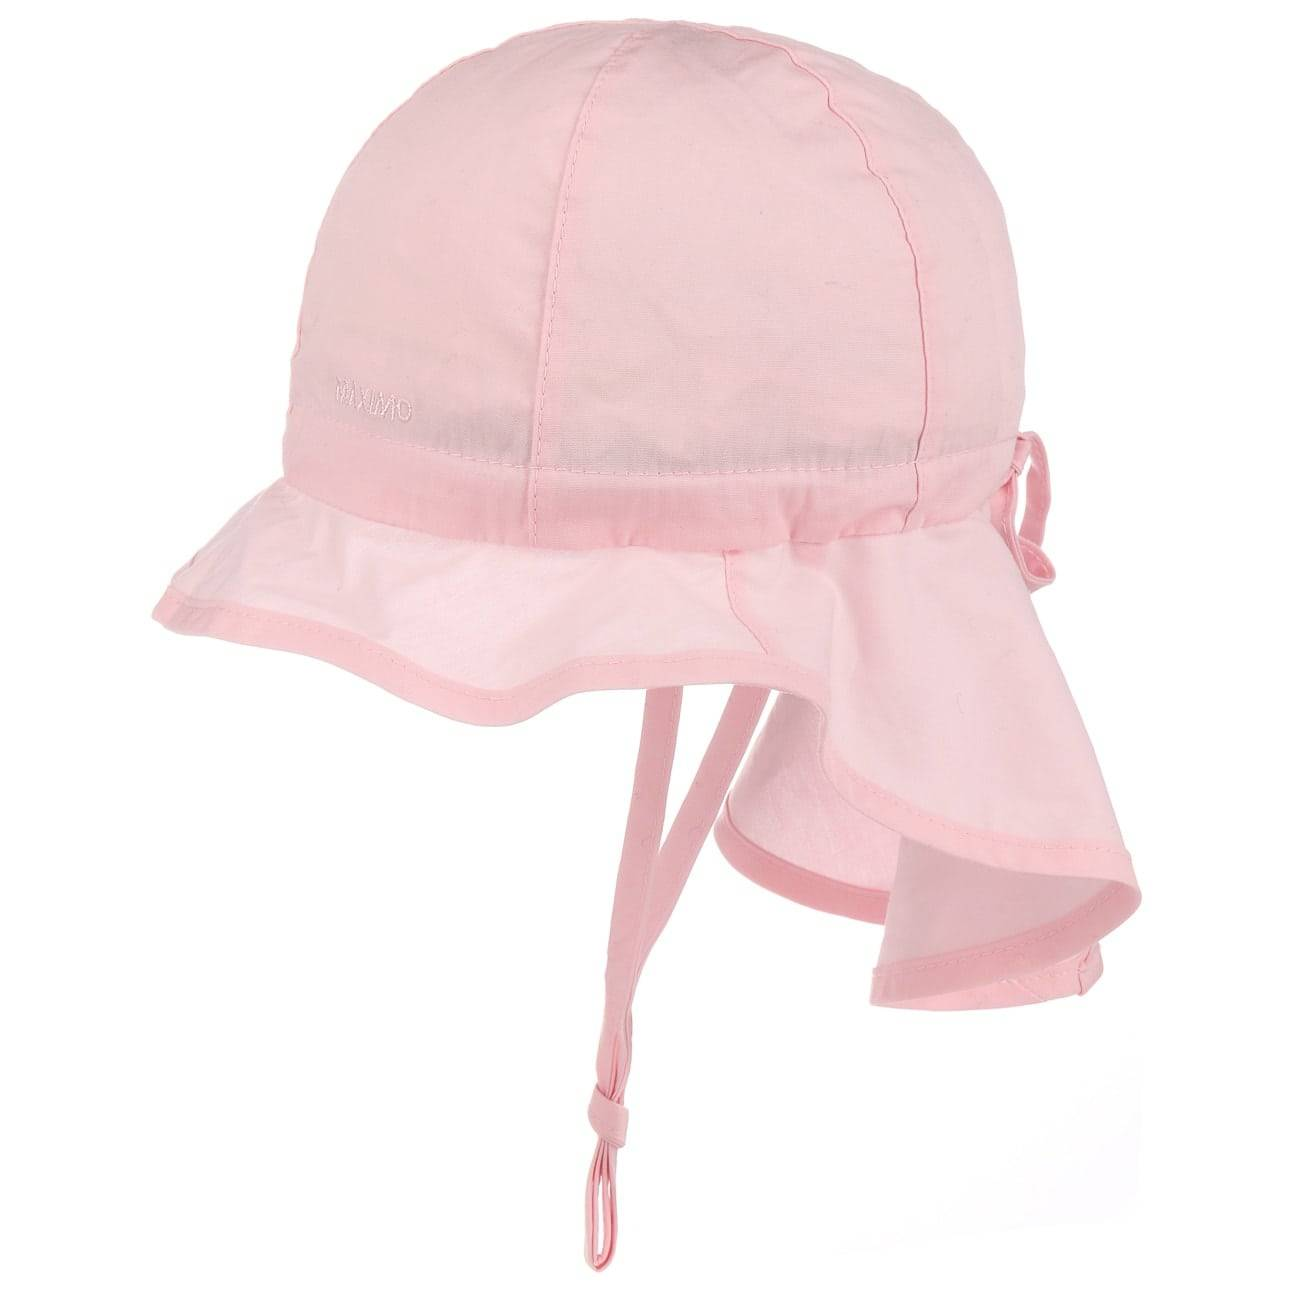 maximo Kids Neck Protection Sun Hat by maximo Col.  rose, size 49 cm